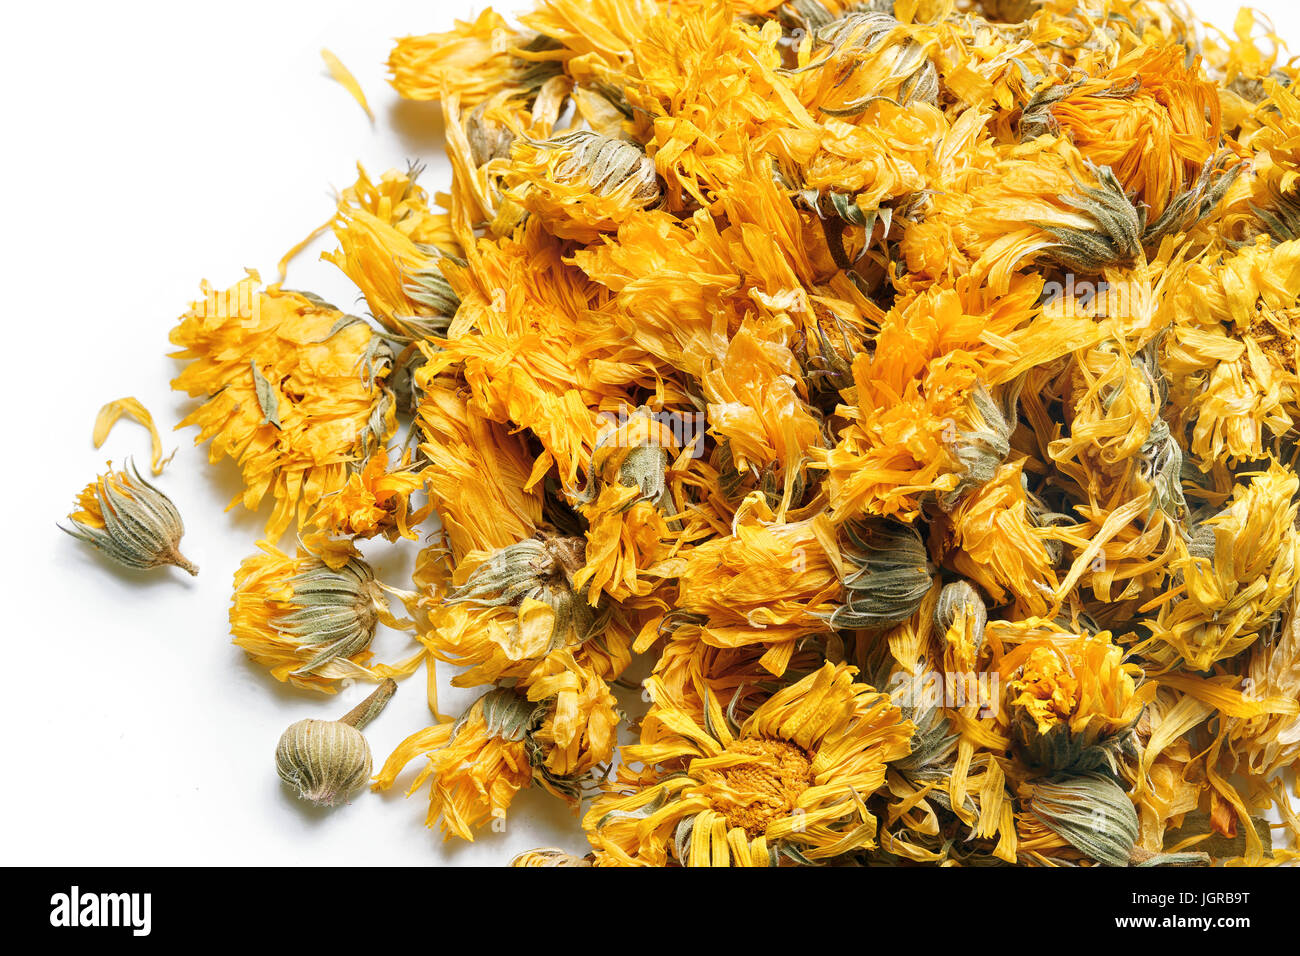 Buy herbal highs - Medicinal Flowers Of A Calendula On White Background Herbal Tea Top View Close Up High Resolution